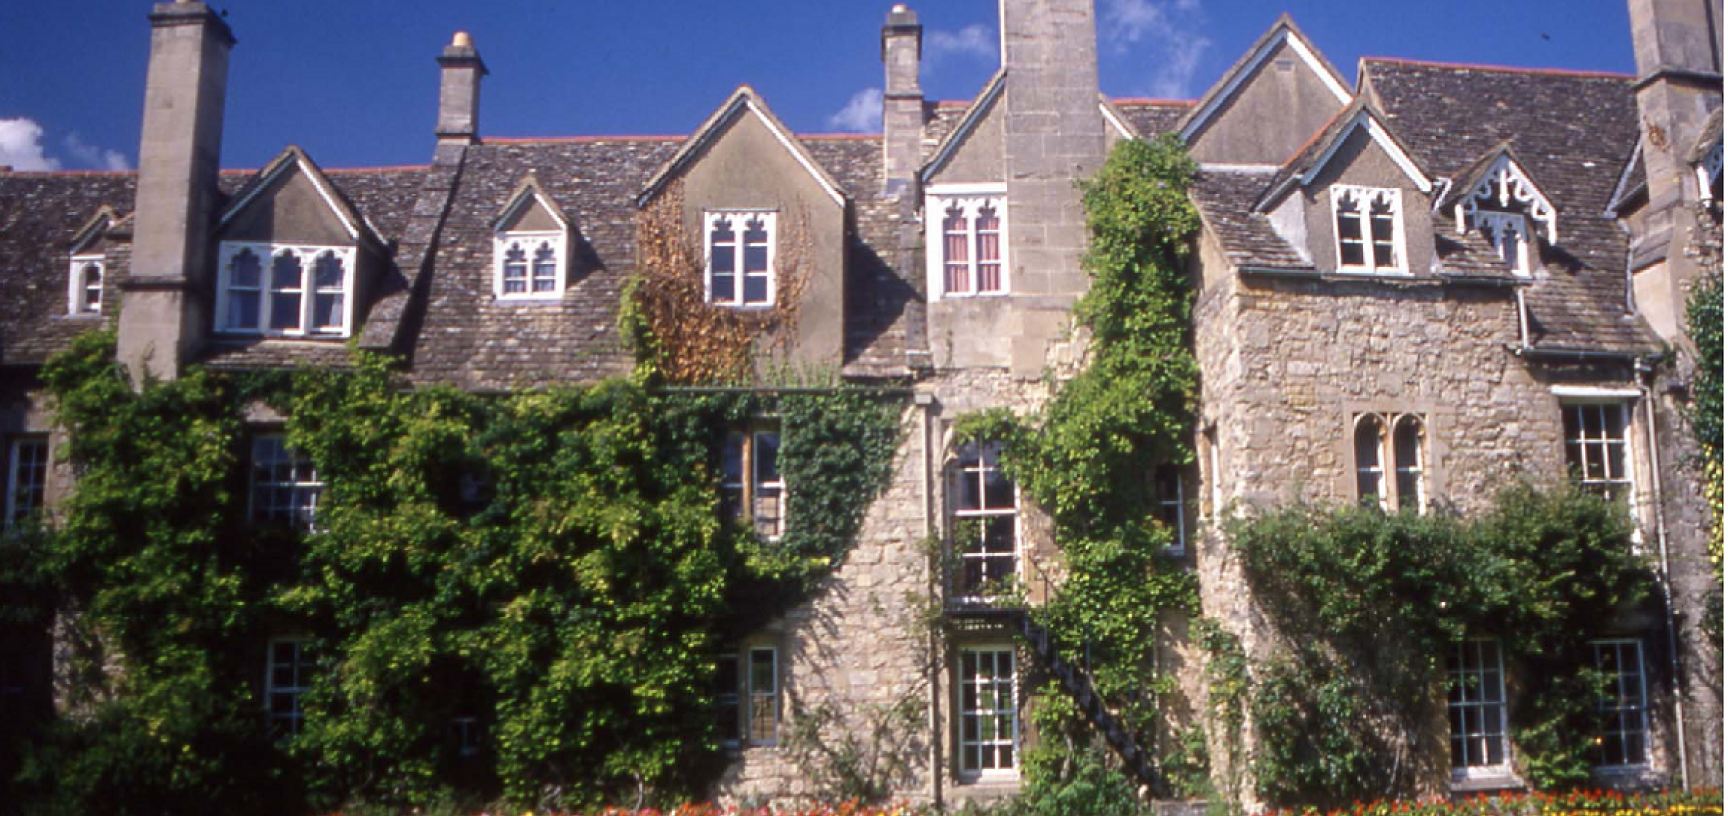 back of the cottages